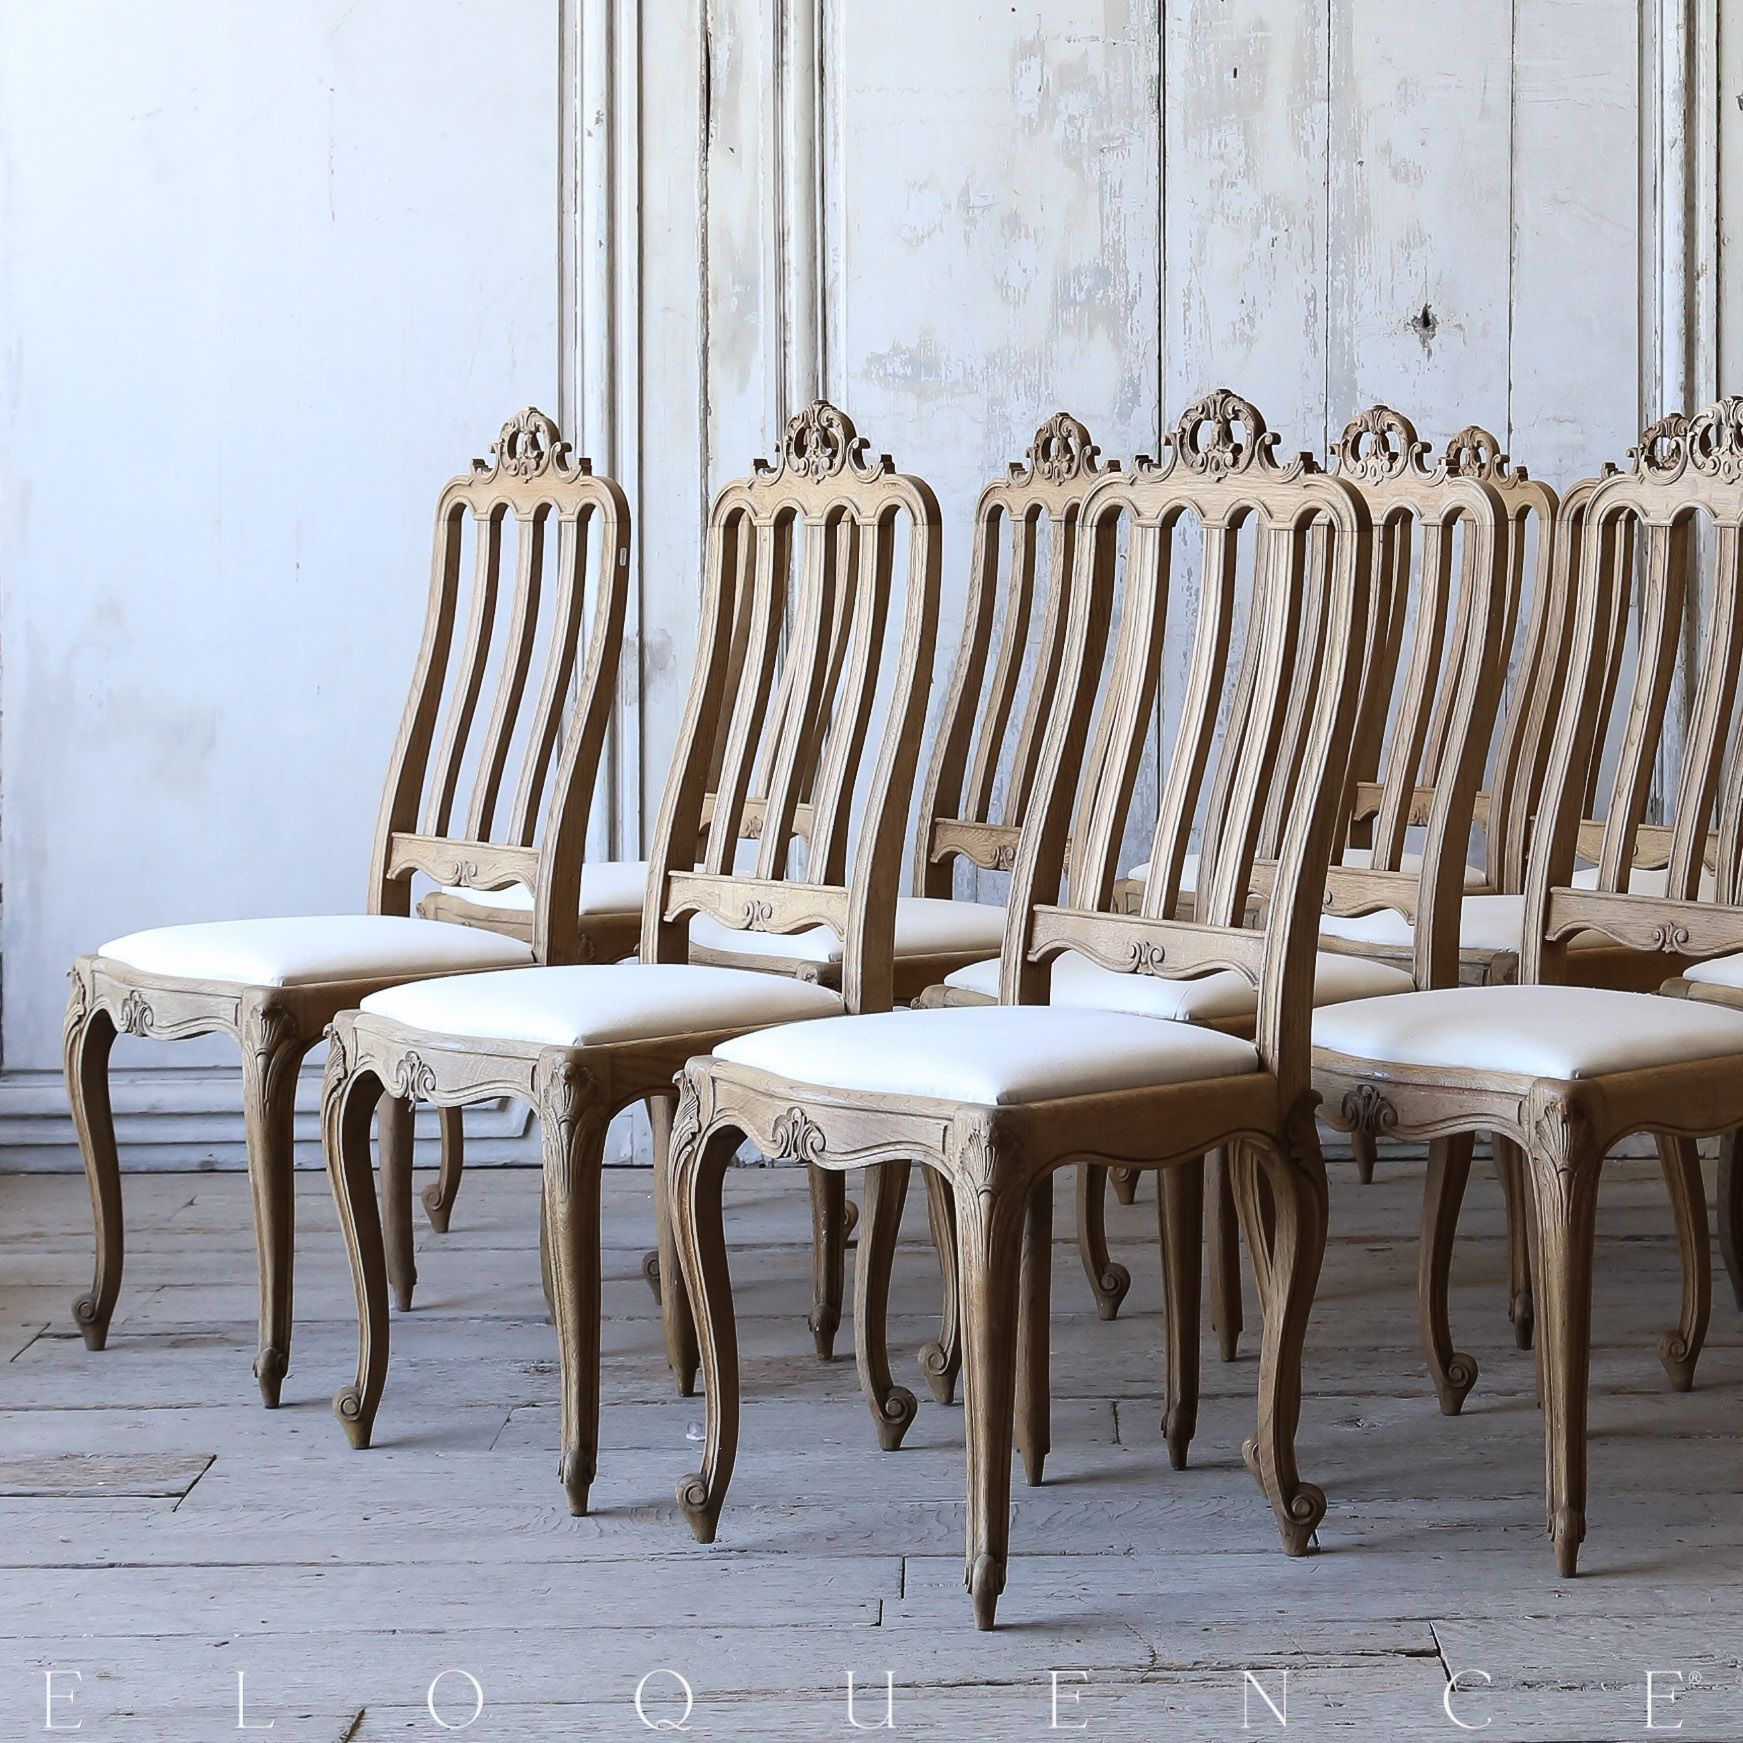 Eloquence, Inc. Set of 12 Antique French Oak Dining Chairs